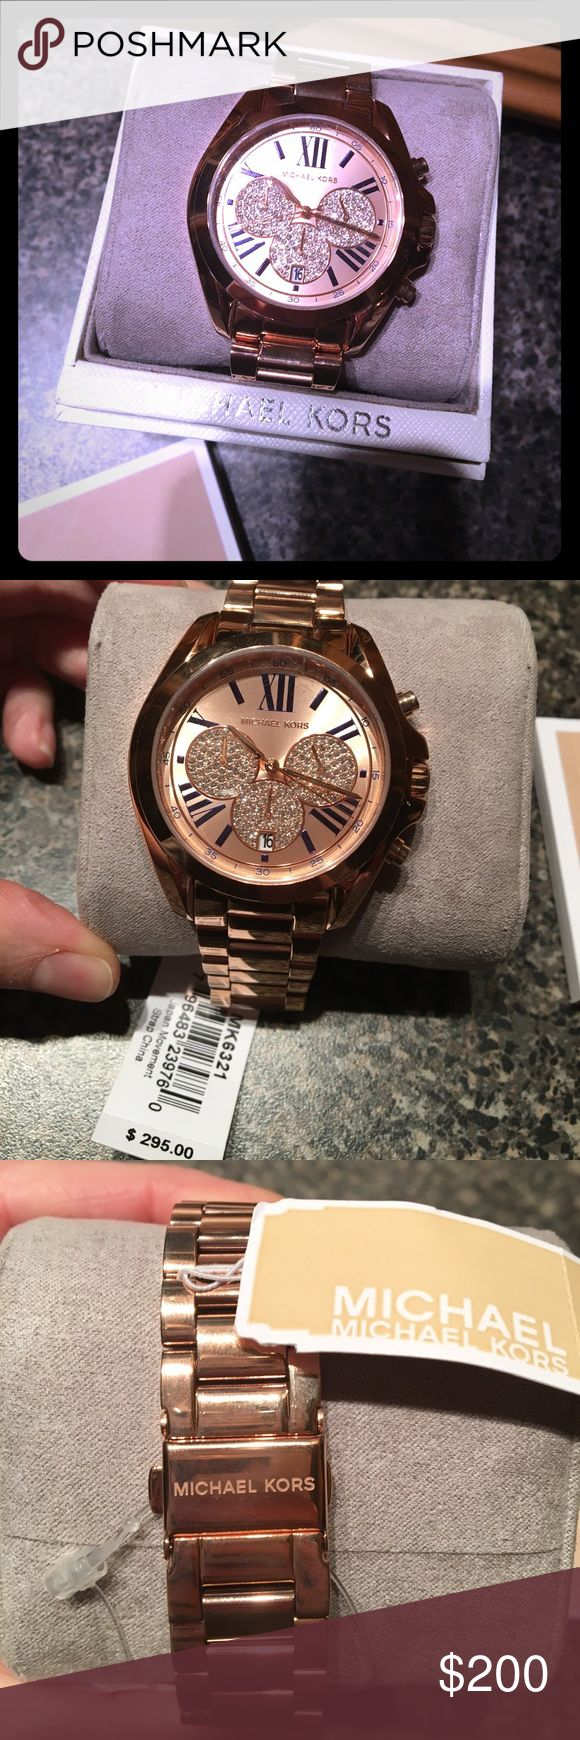 NWT Michael Kors Men's Rose Gold Watch MK6321 Please feel free to ask questions...(59) Michael Kors Accessories Watches